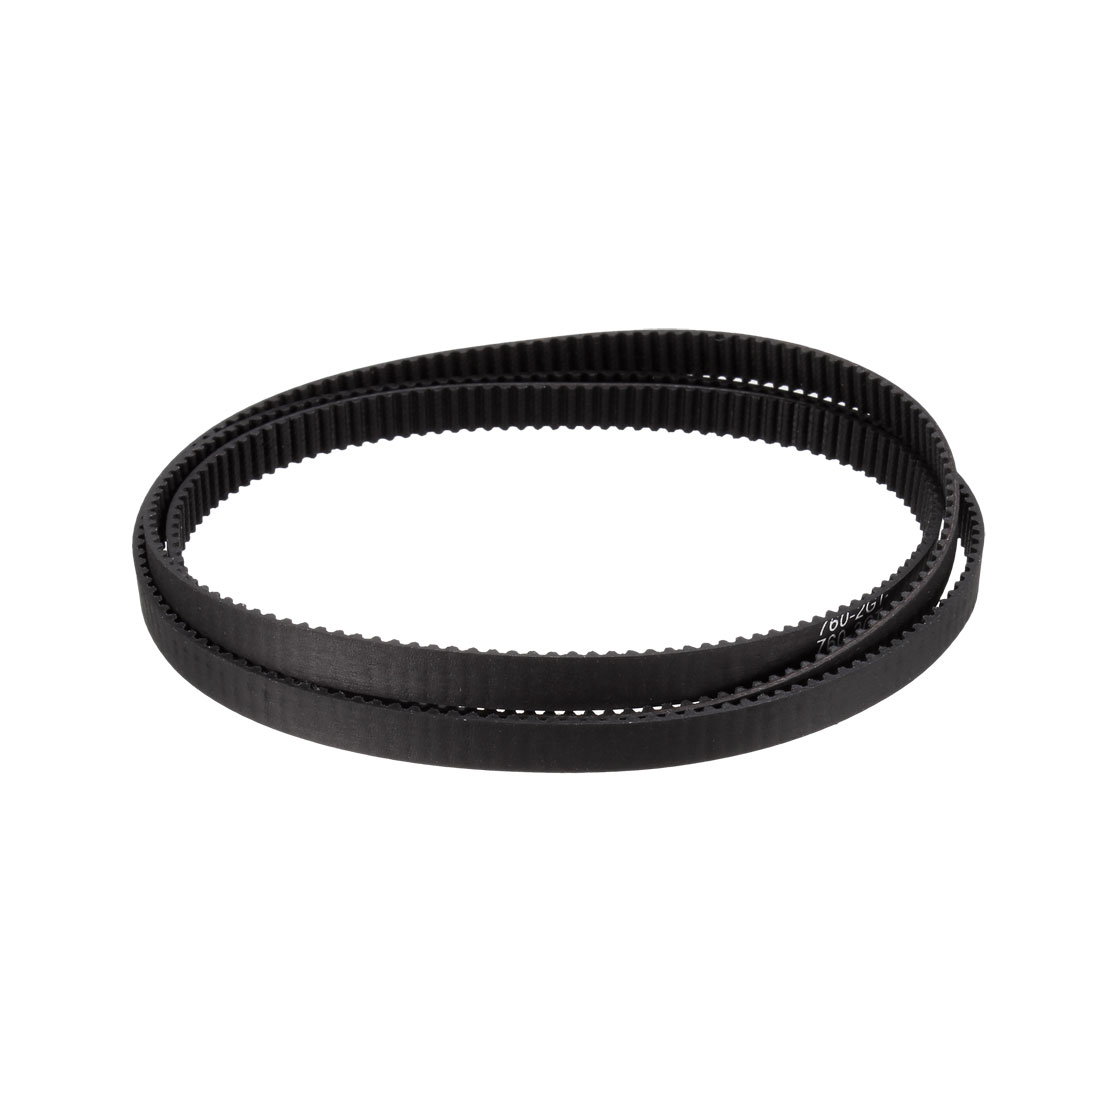 GT2 Timing Belt 760mm Closed Fit Synchronous Wheel for 3D Printer